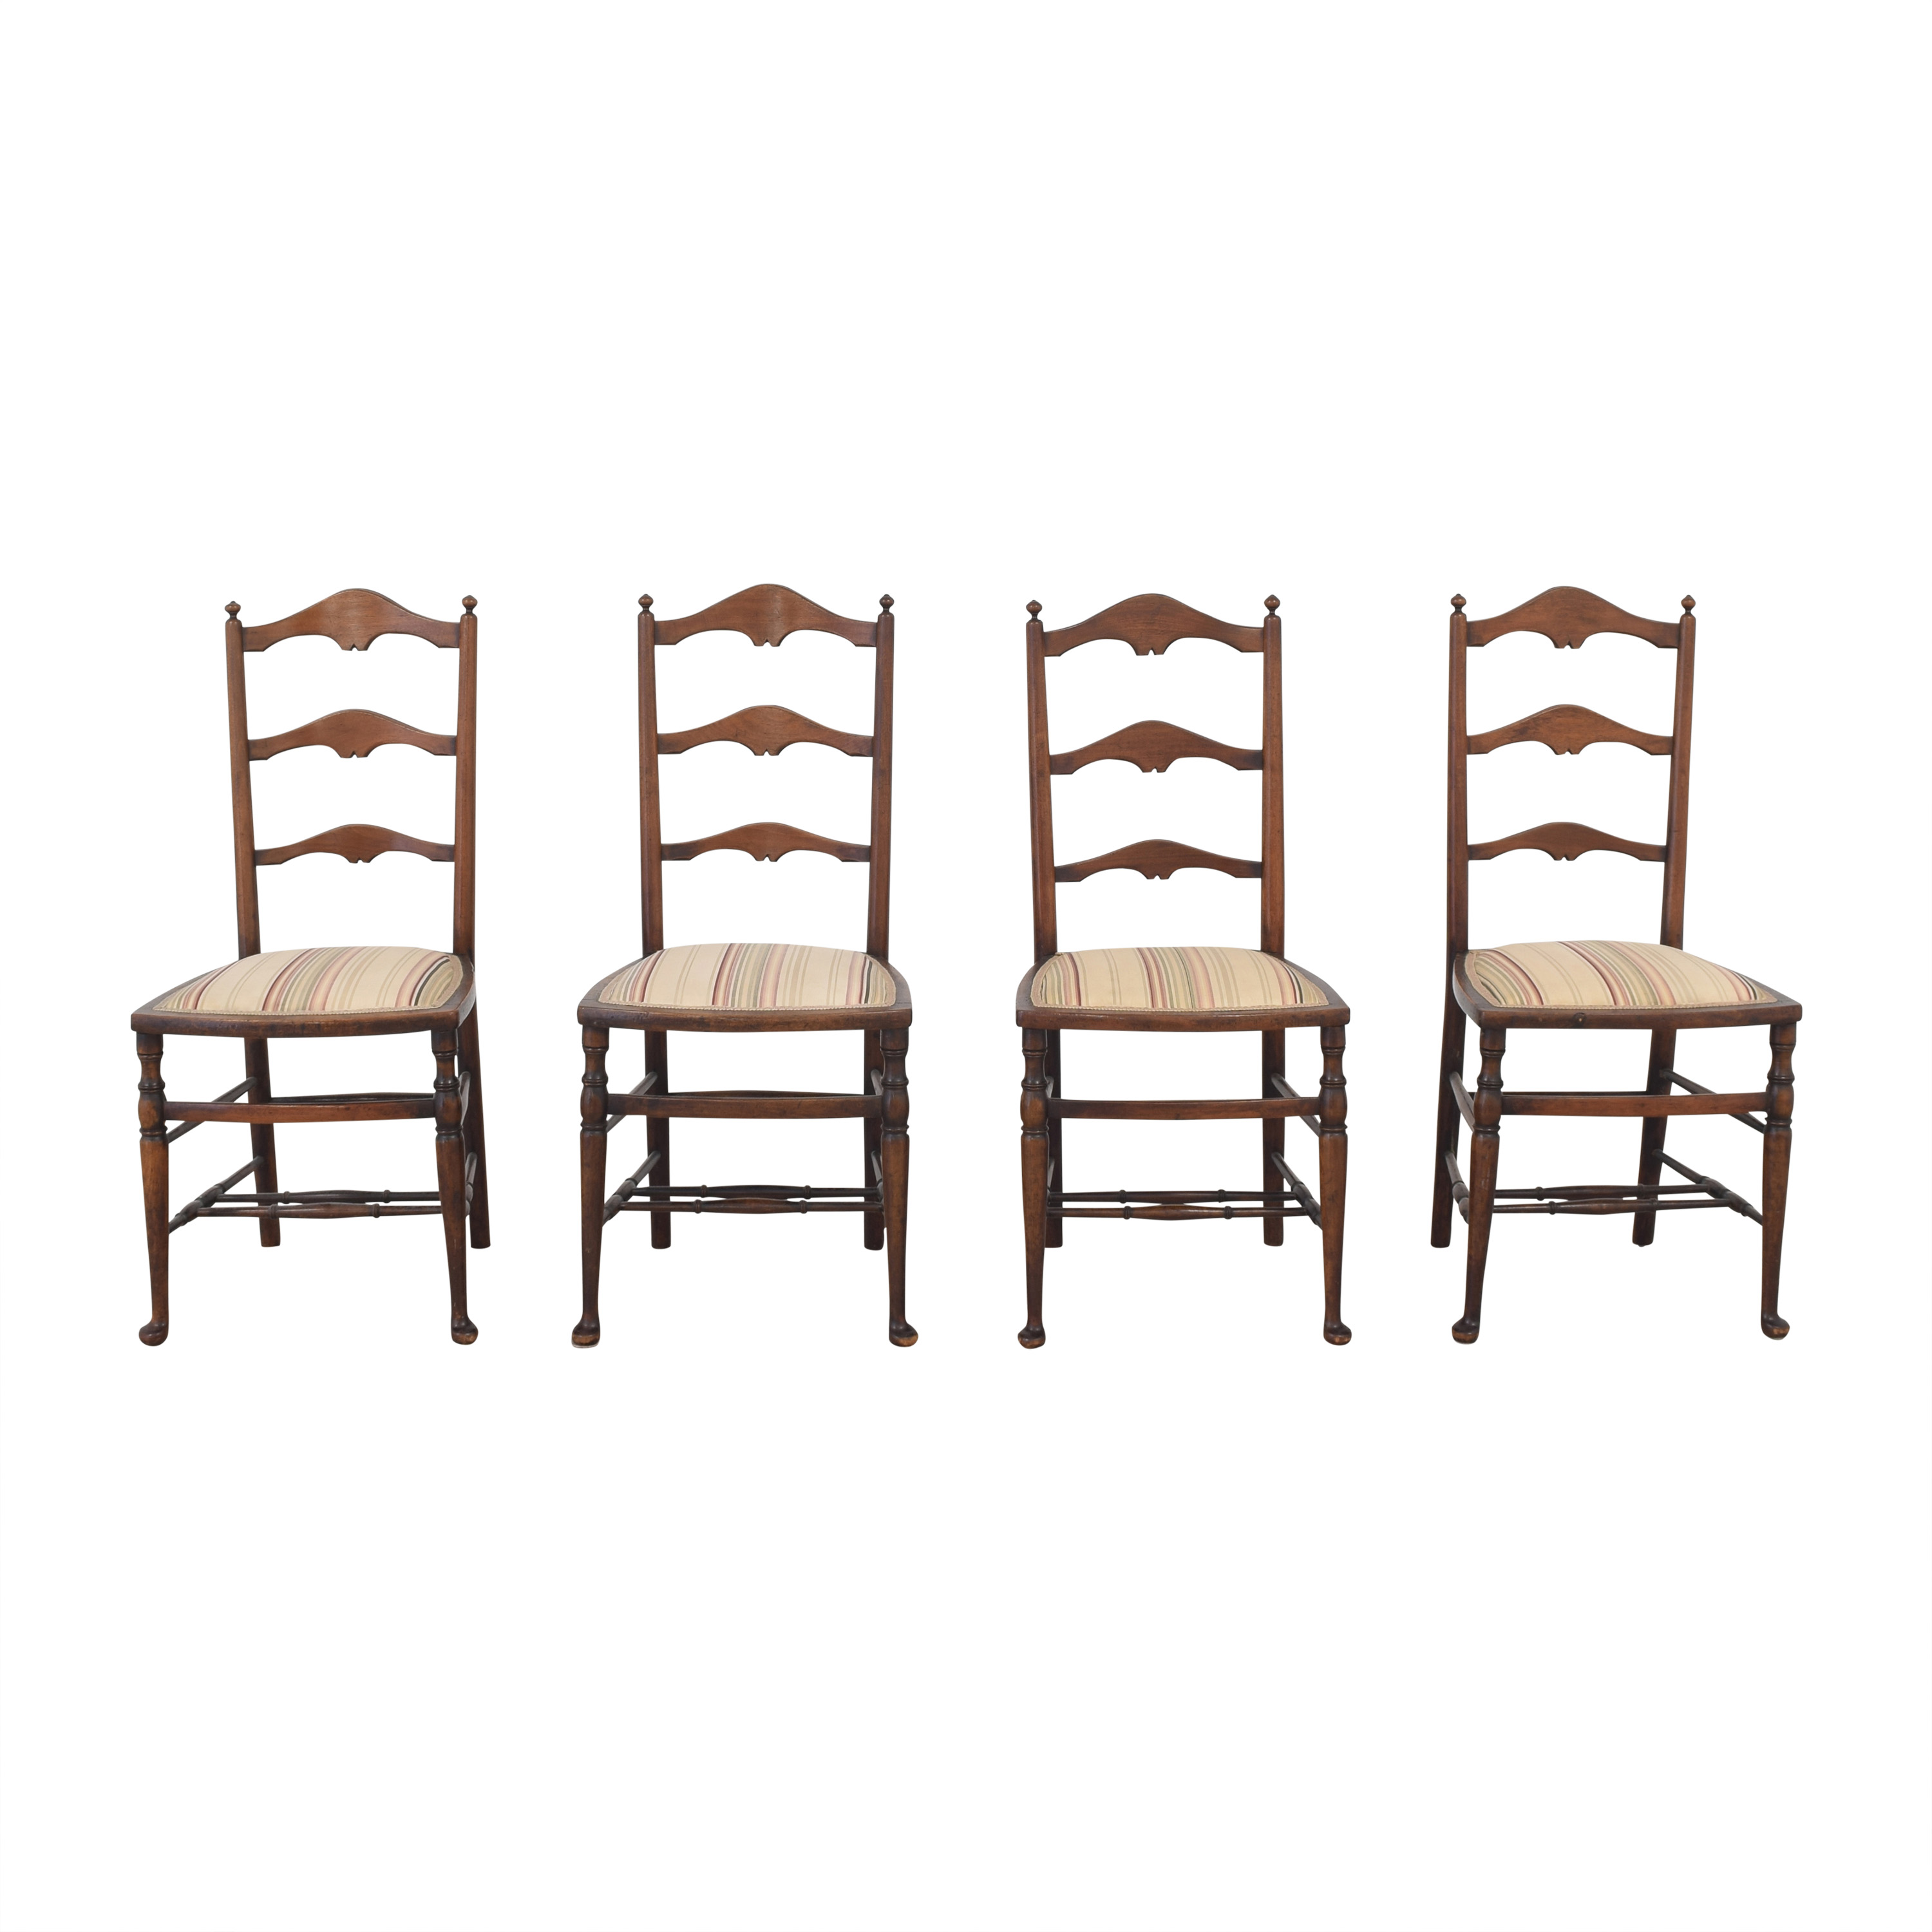 Vintage Ladder Back Chairs coupon